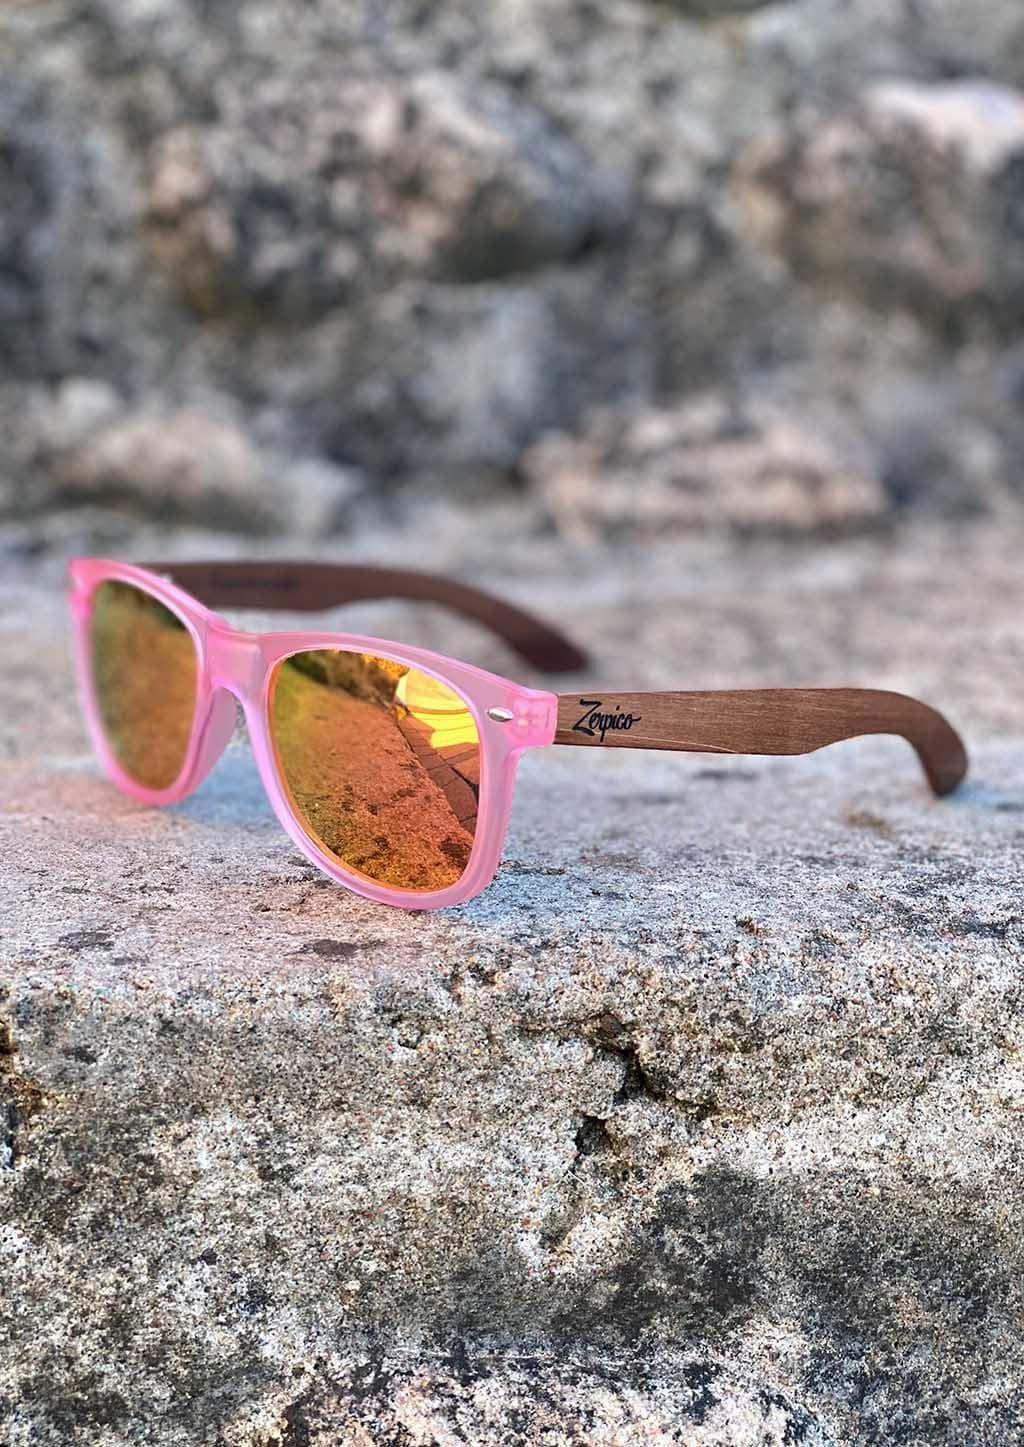 Eyewood Wayfarer - Coral - Nice wayfarers with pink frame and pink lenses. From the front outside in the sun.